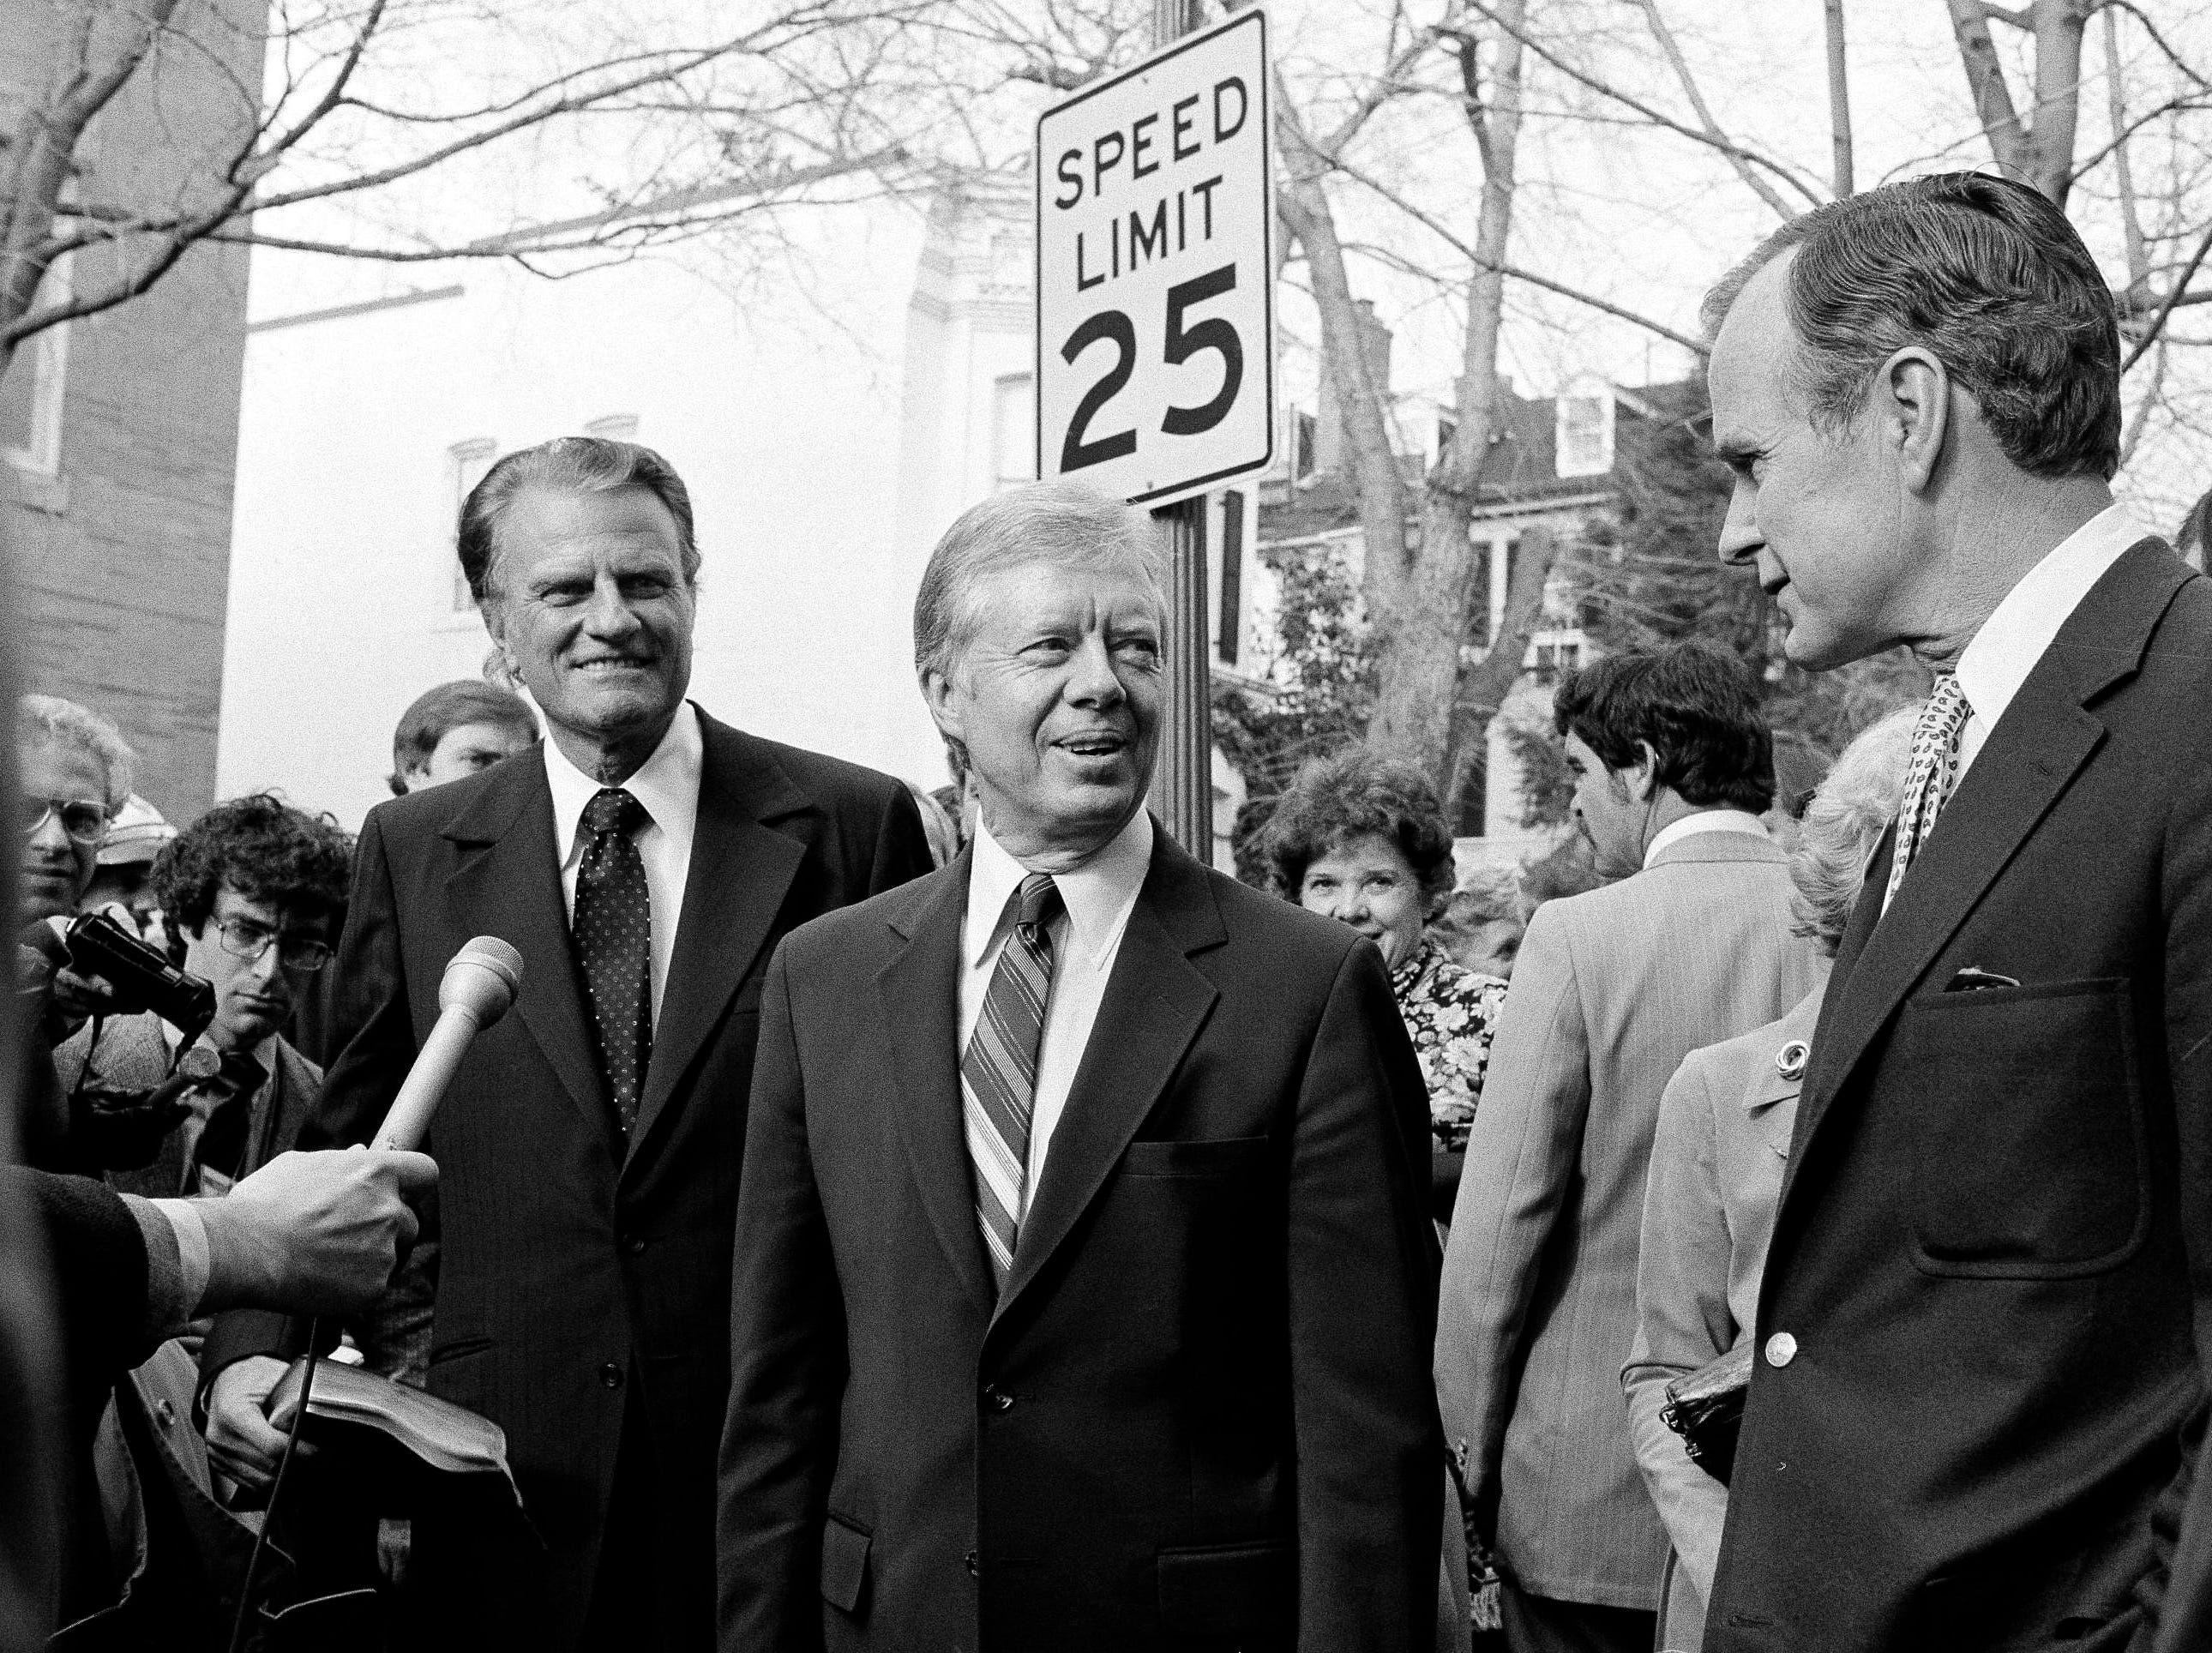 President Jimmy Carter answers a reporter's question outside the Georgetown Baptist Church in Washington, Dec. 7, 1980, where the Rev. Billy Graham held services.  Vice President-elect George Bush, right, is seen at right.  (AP Photo/Dennis Cook)